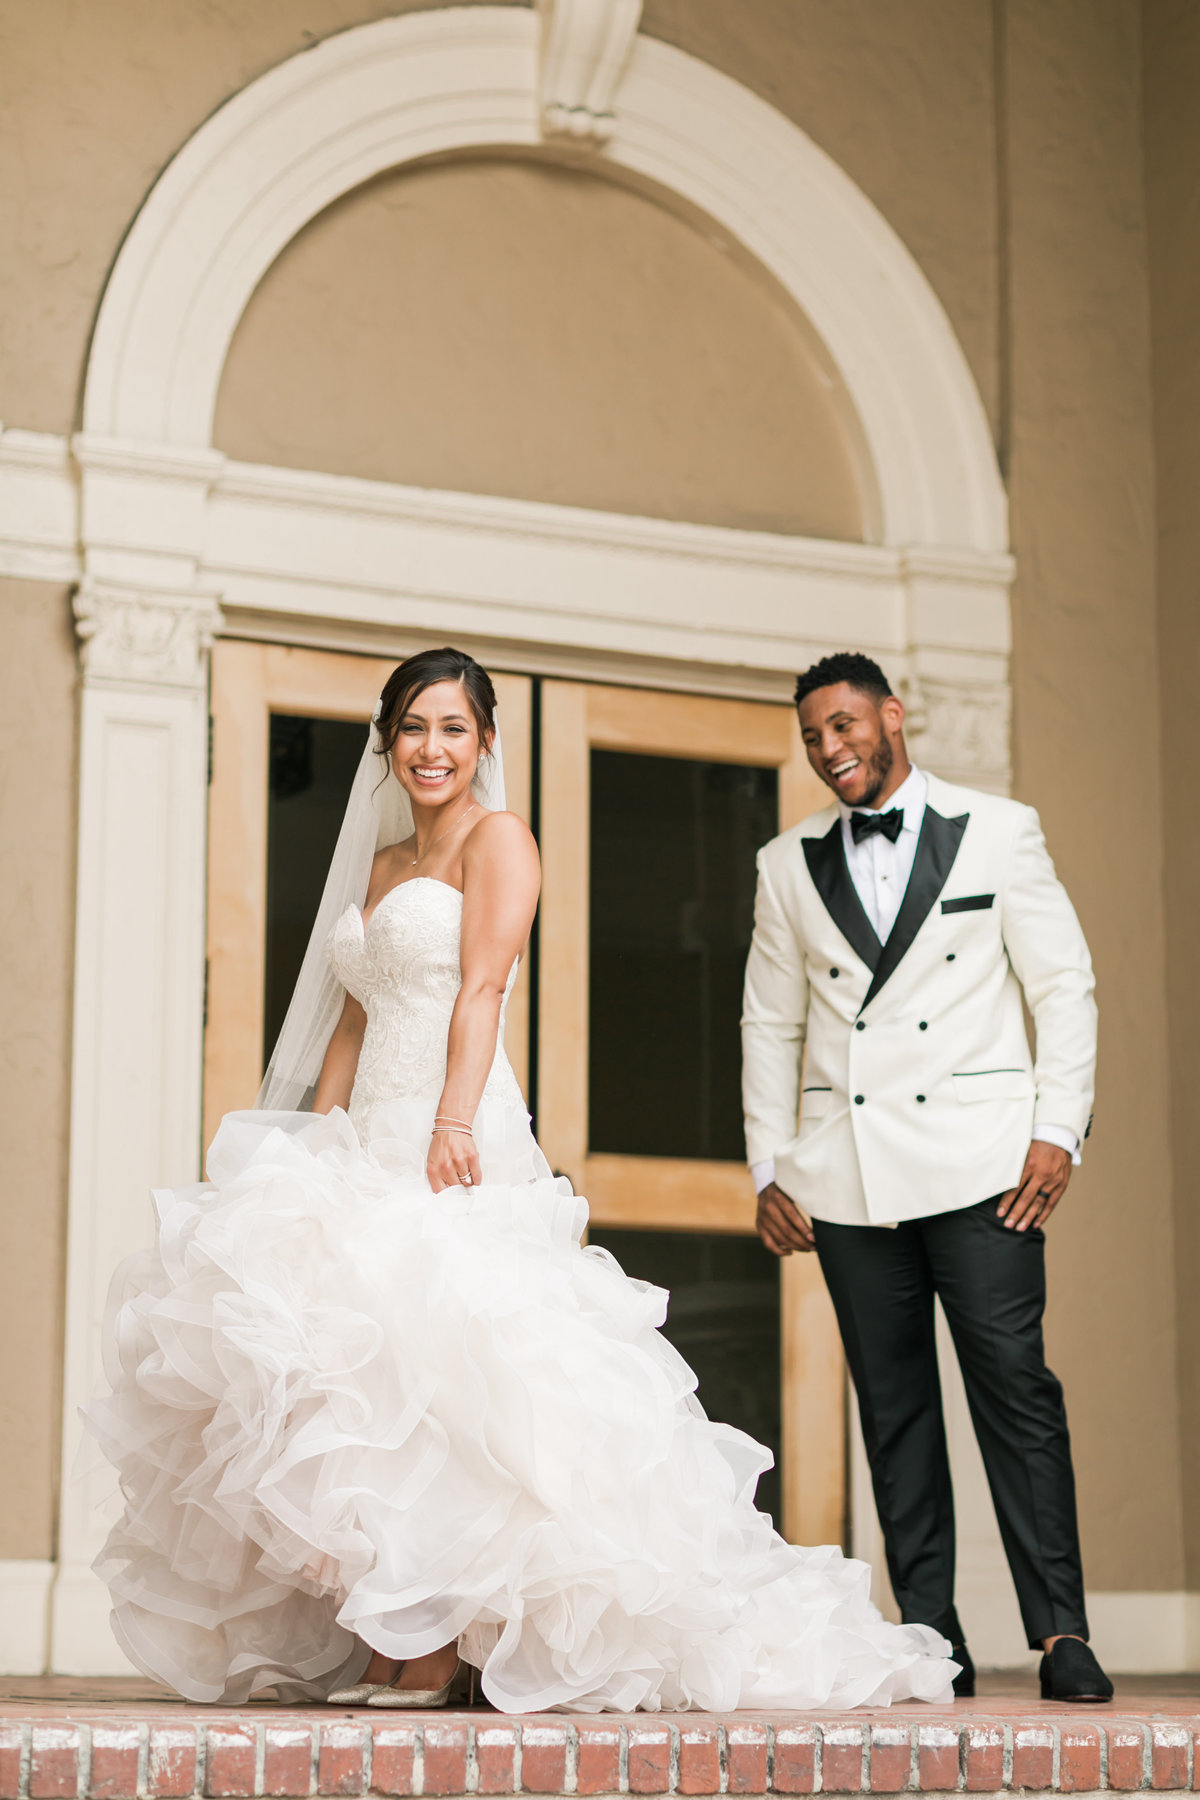 Ebell_Los_Angeles_Malcolm_Smith_NFL_Navy_Brass_Wedding_Valorie_Darling_Photography - 101 of 122